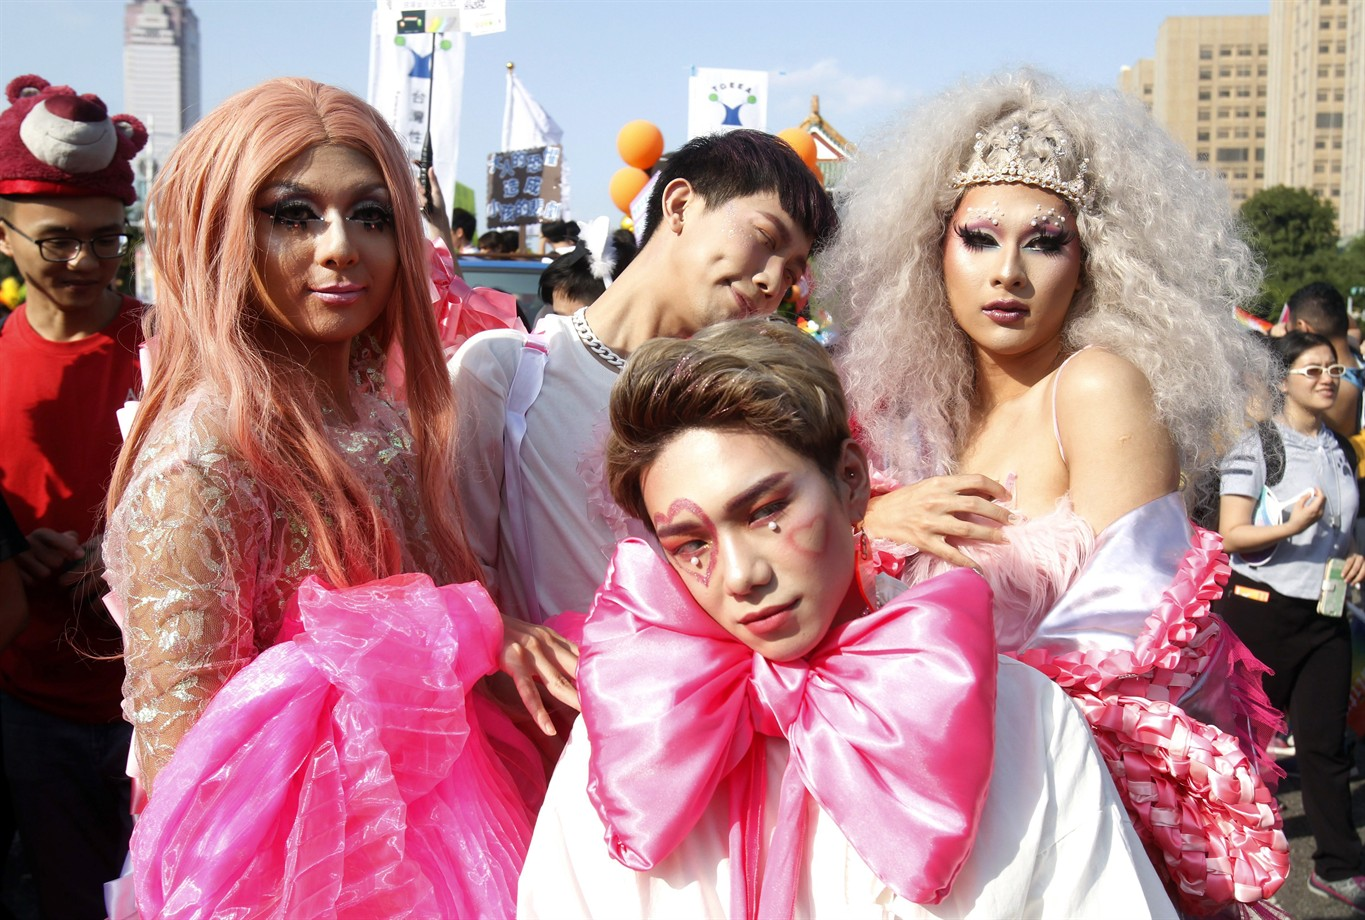 Gay Pride Halloween Costume.Tens Of Thousands Gather In Taiwan For Gay Pride Parade